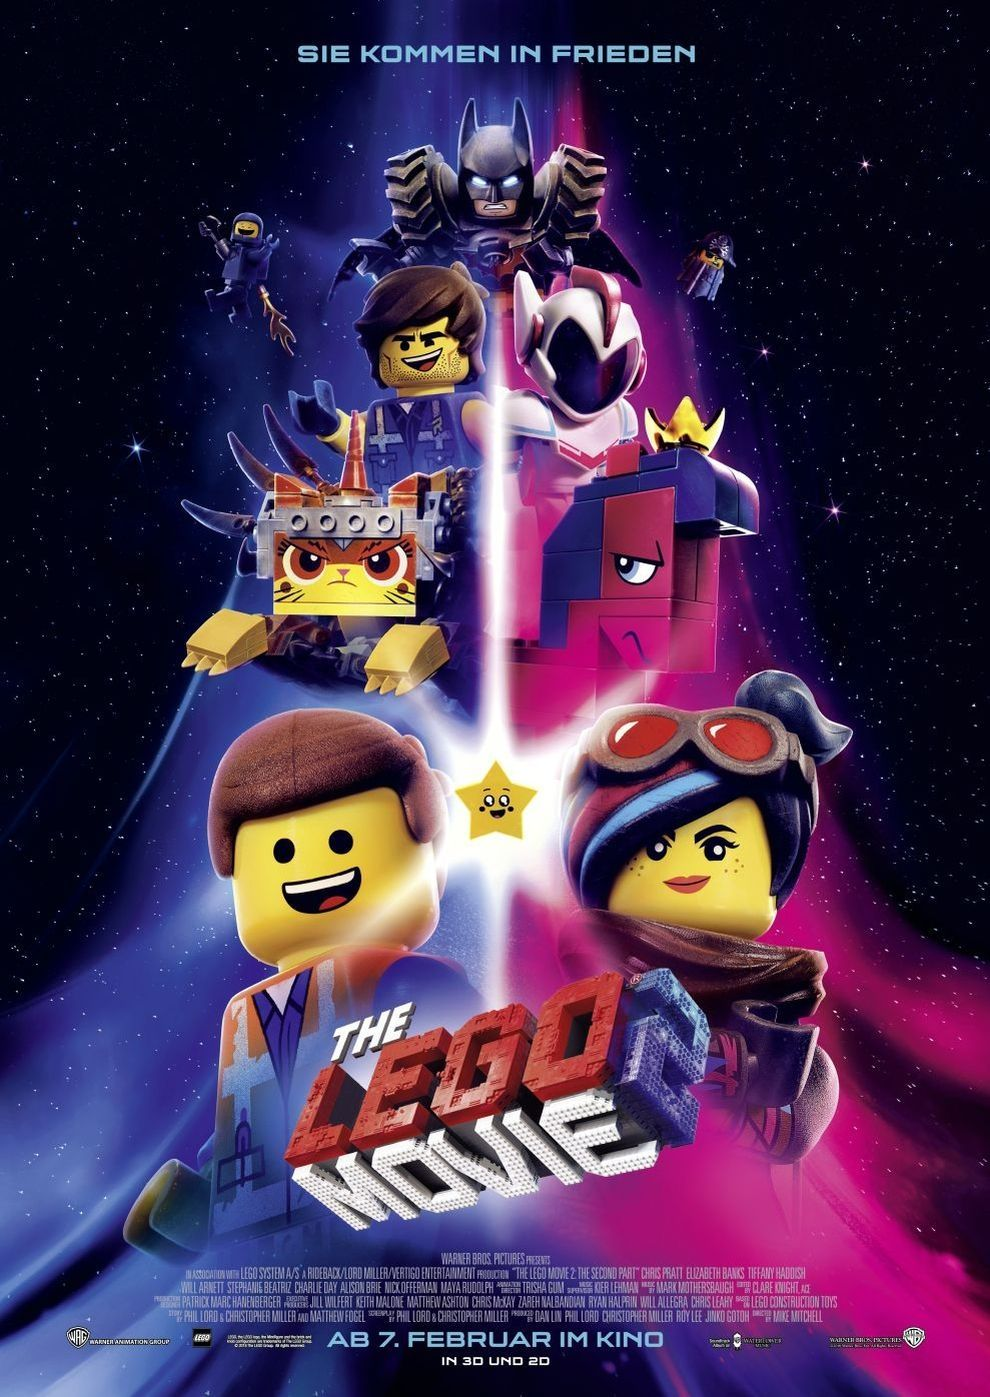 Plakat des Films: The Lego Movie 2